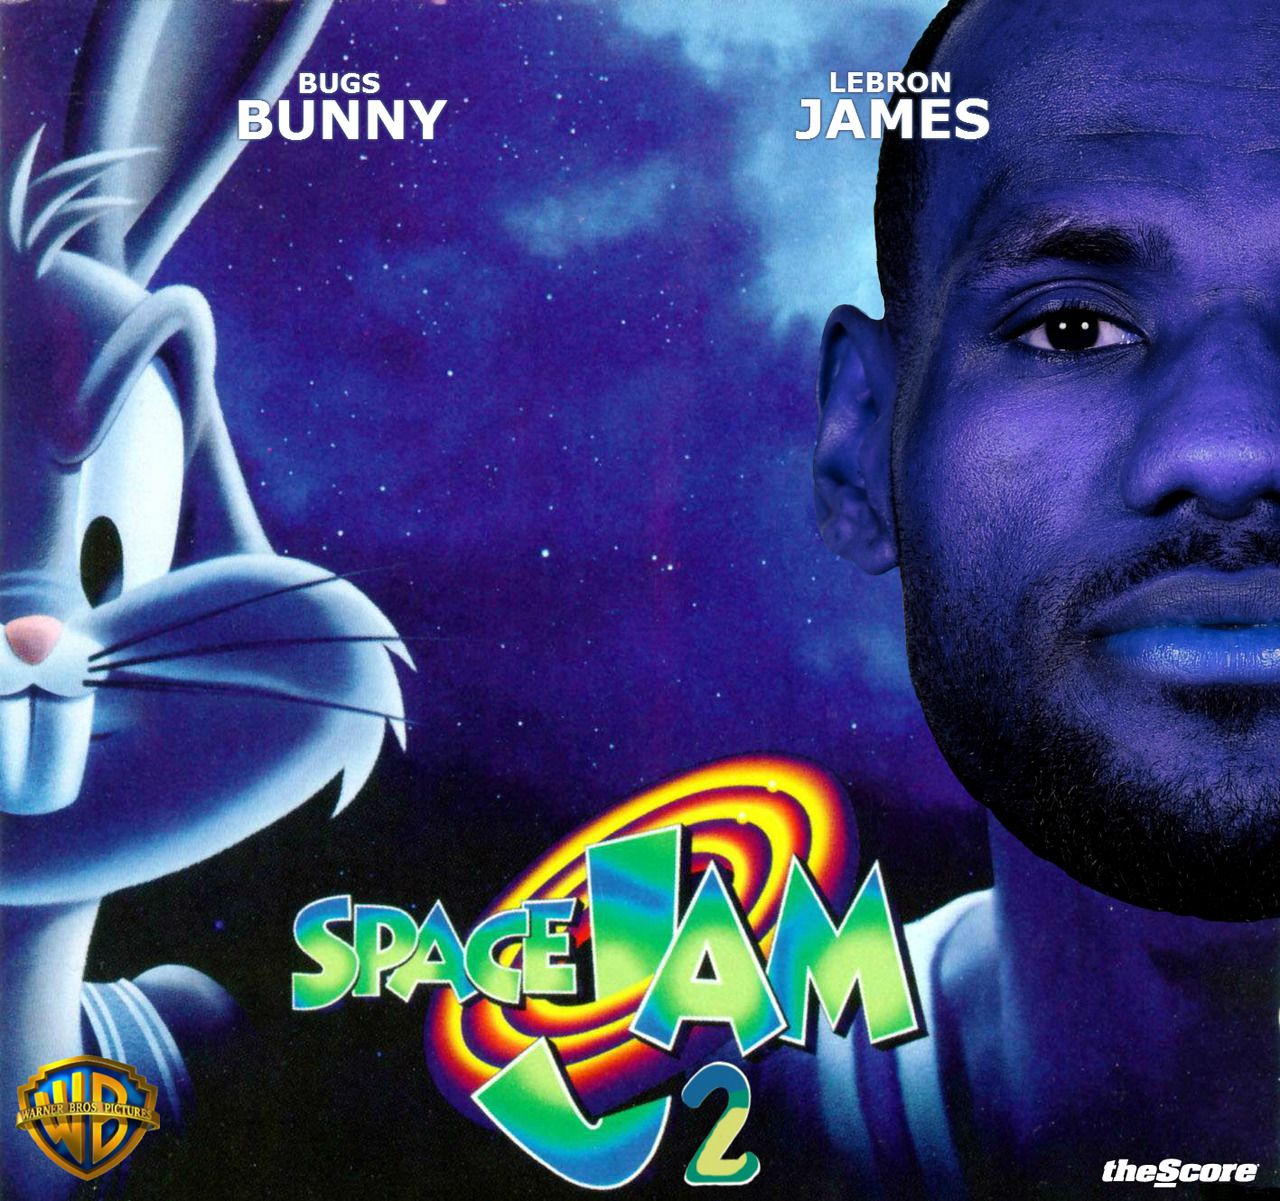 Pic: Would you want to see LeBron James in Space Jam 2?